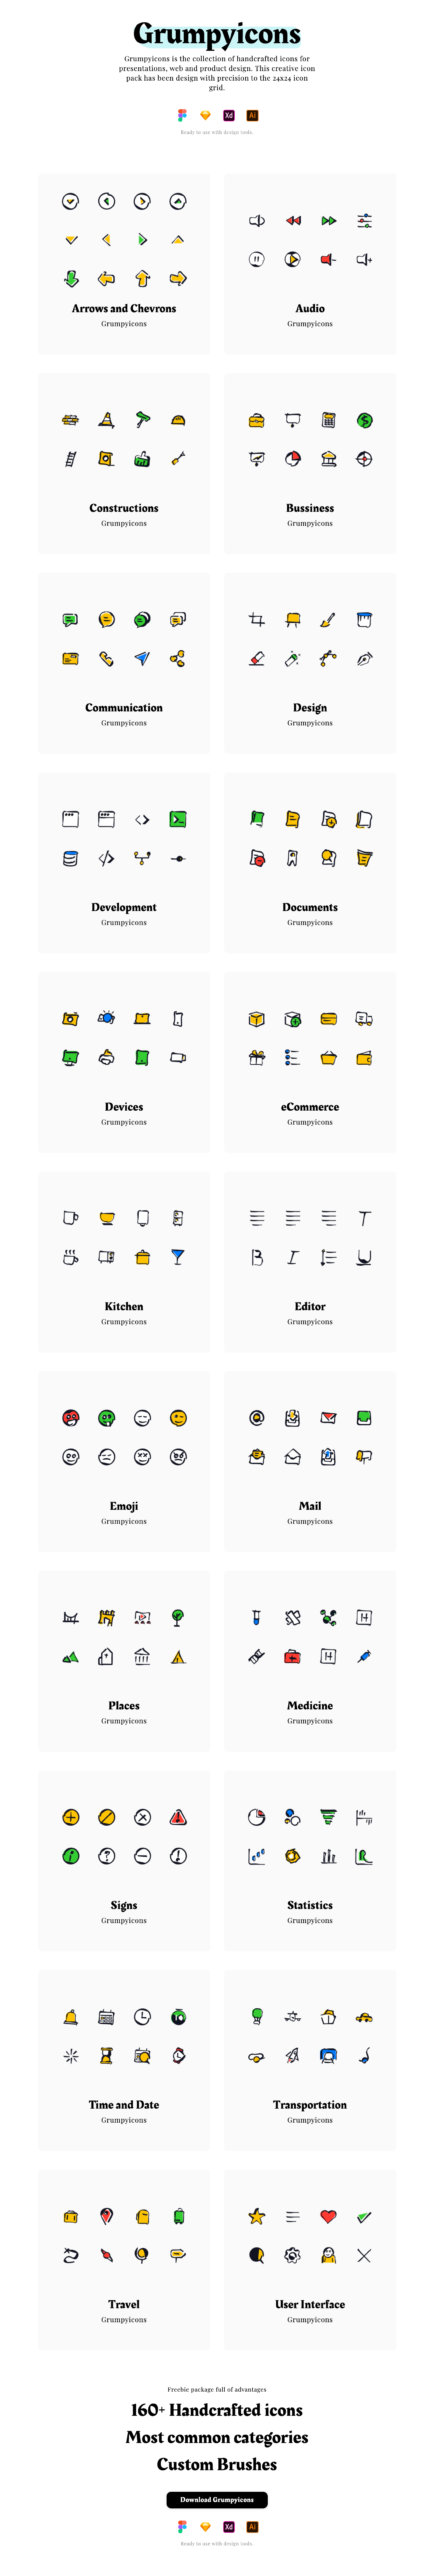 Grumpyicons Free Icons Pack from UIGarage